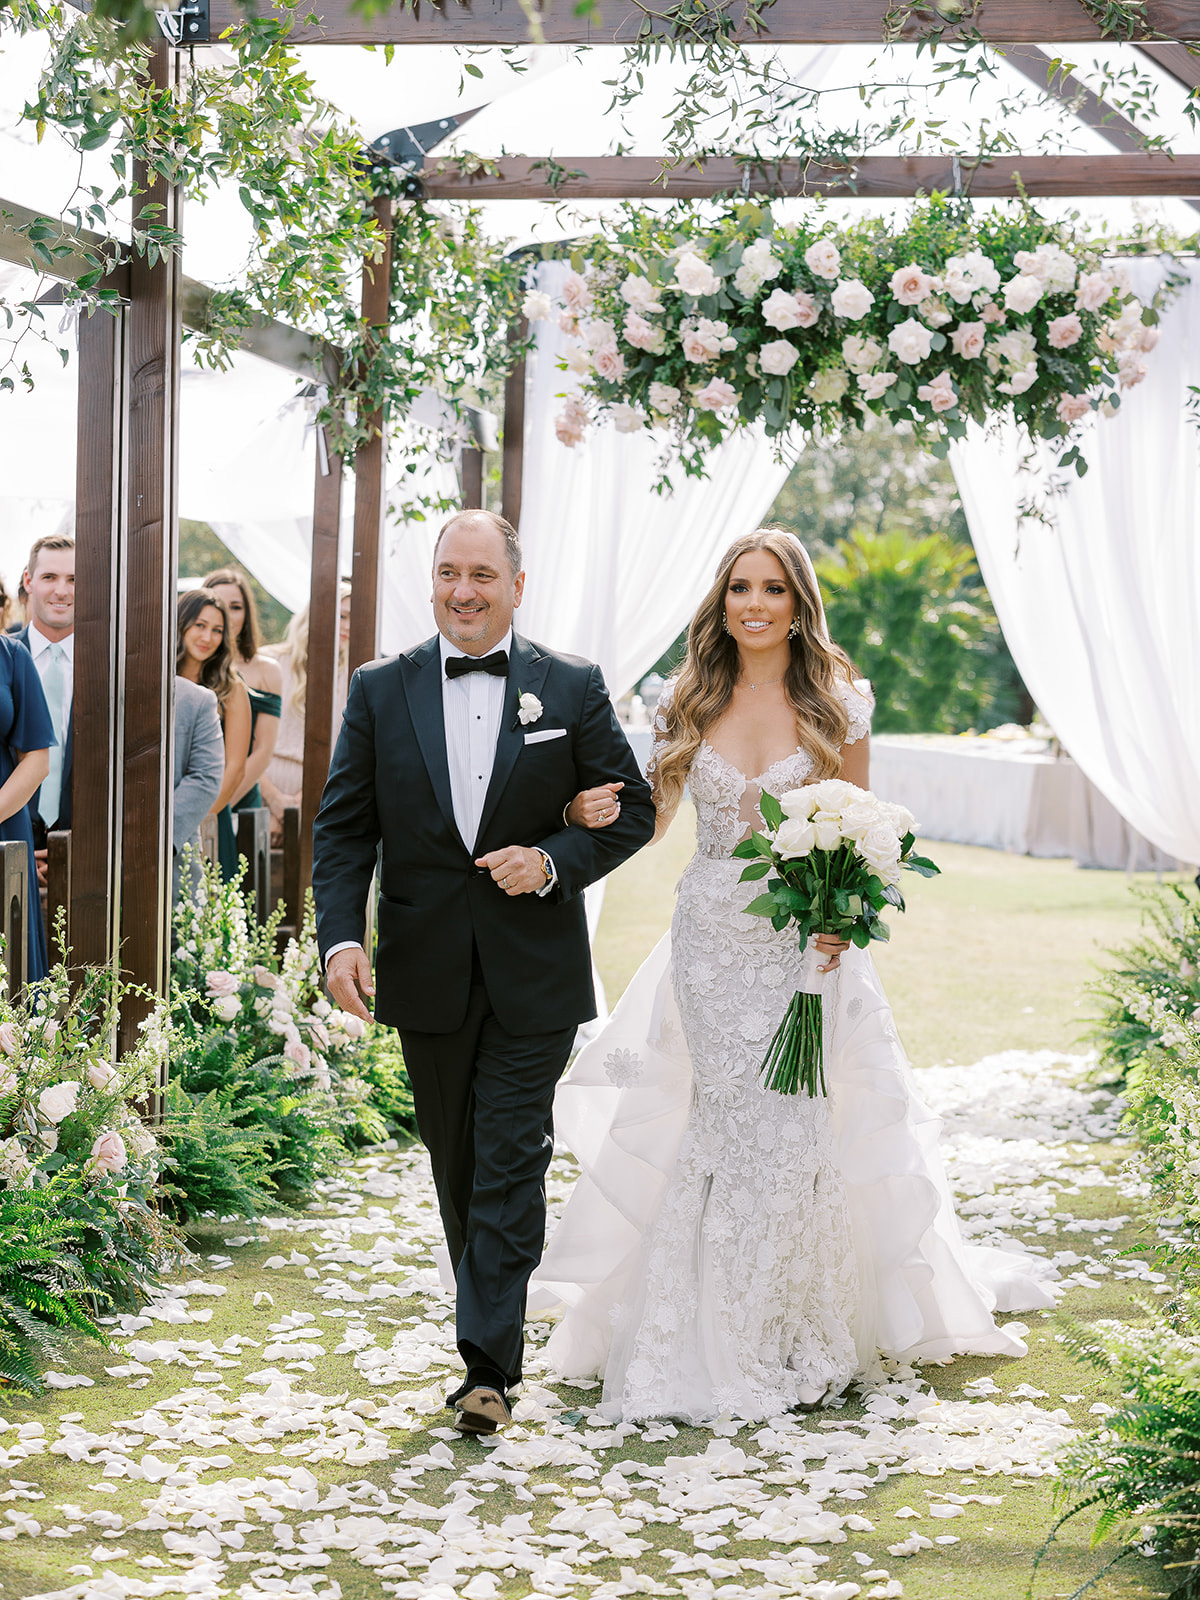 bride and father processing at outdoor wedding ceremony